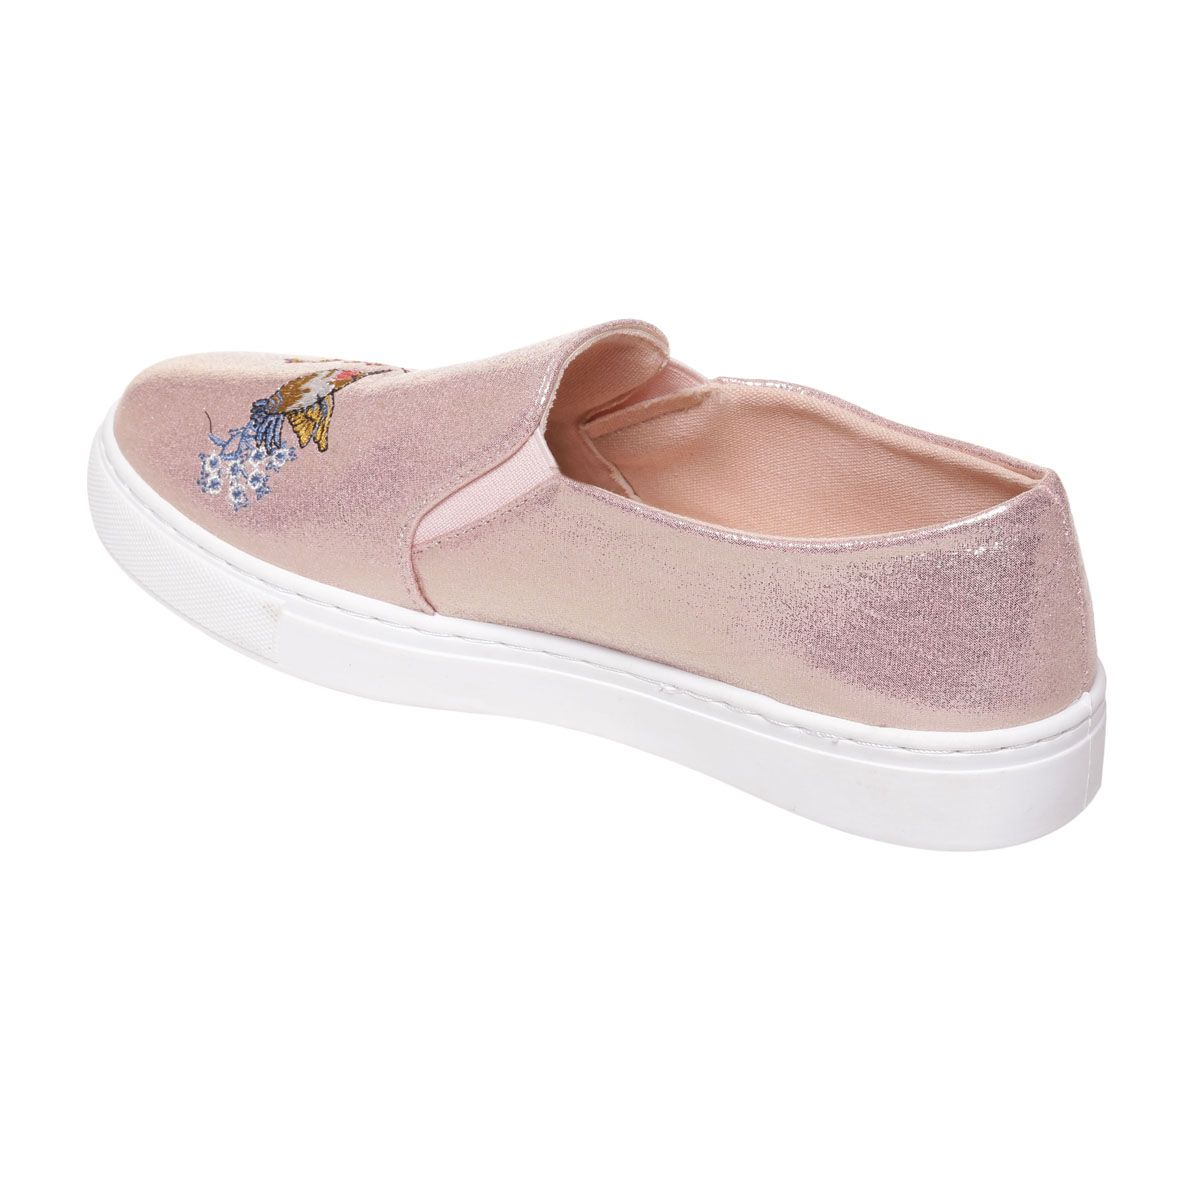 Slip on roses scintillantes avec broderies